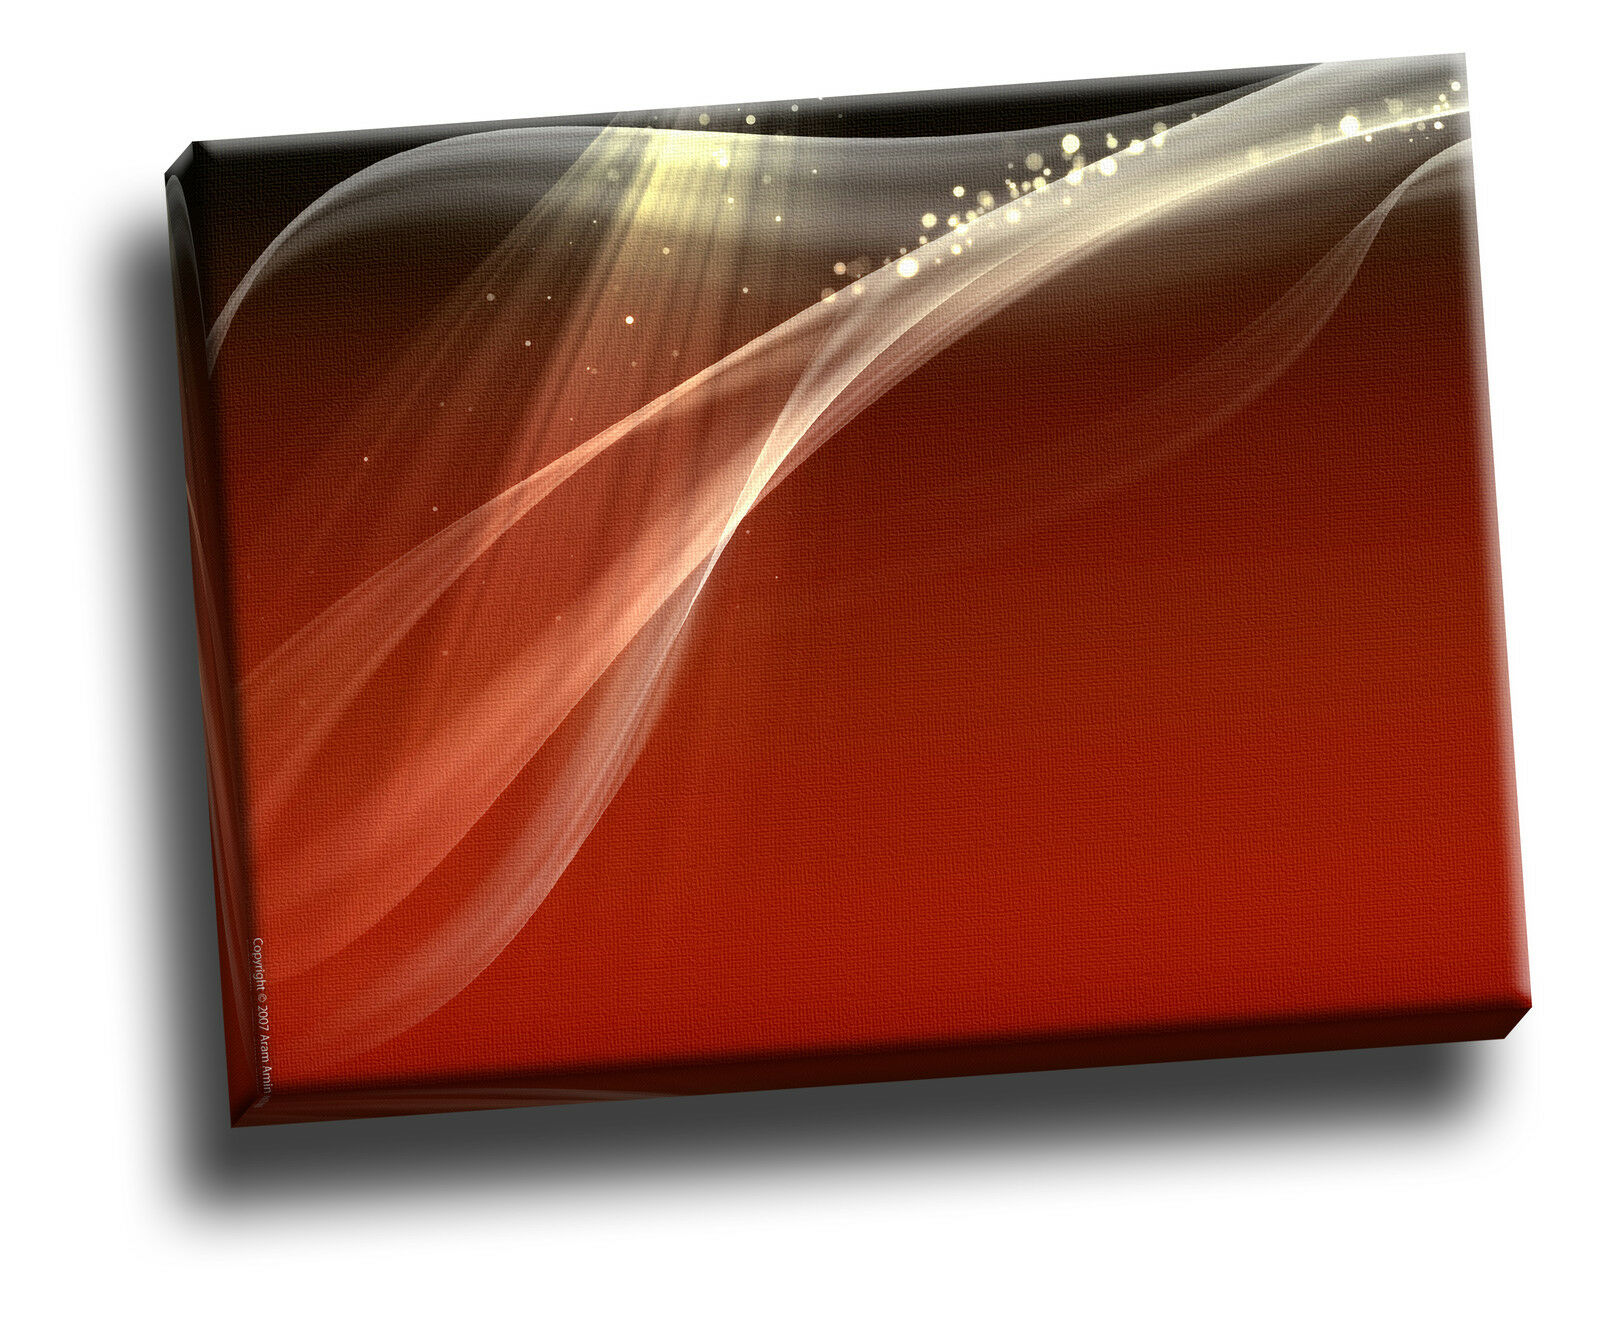 DARK rosso Swirl Giclee su tela astratto Coloreeee Foto Wall Art